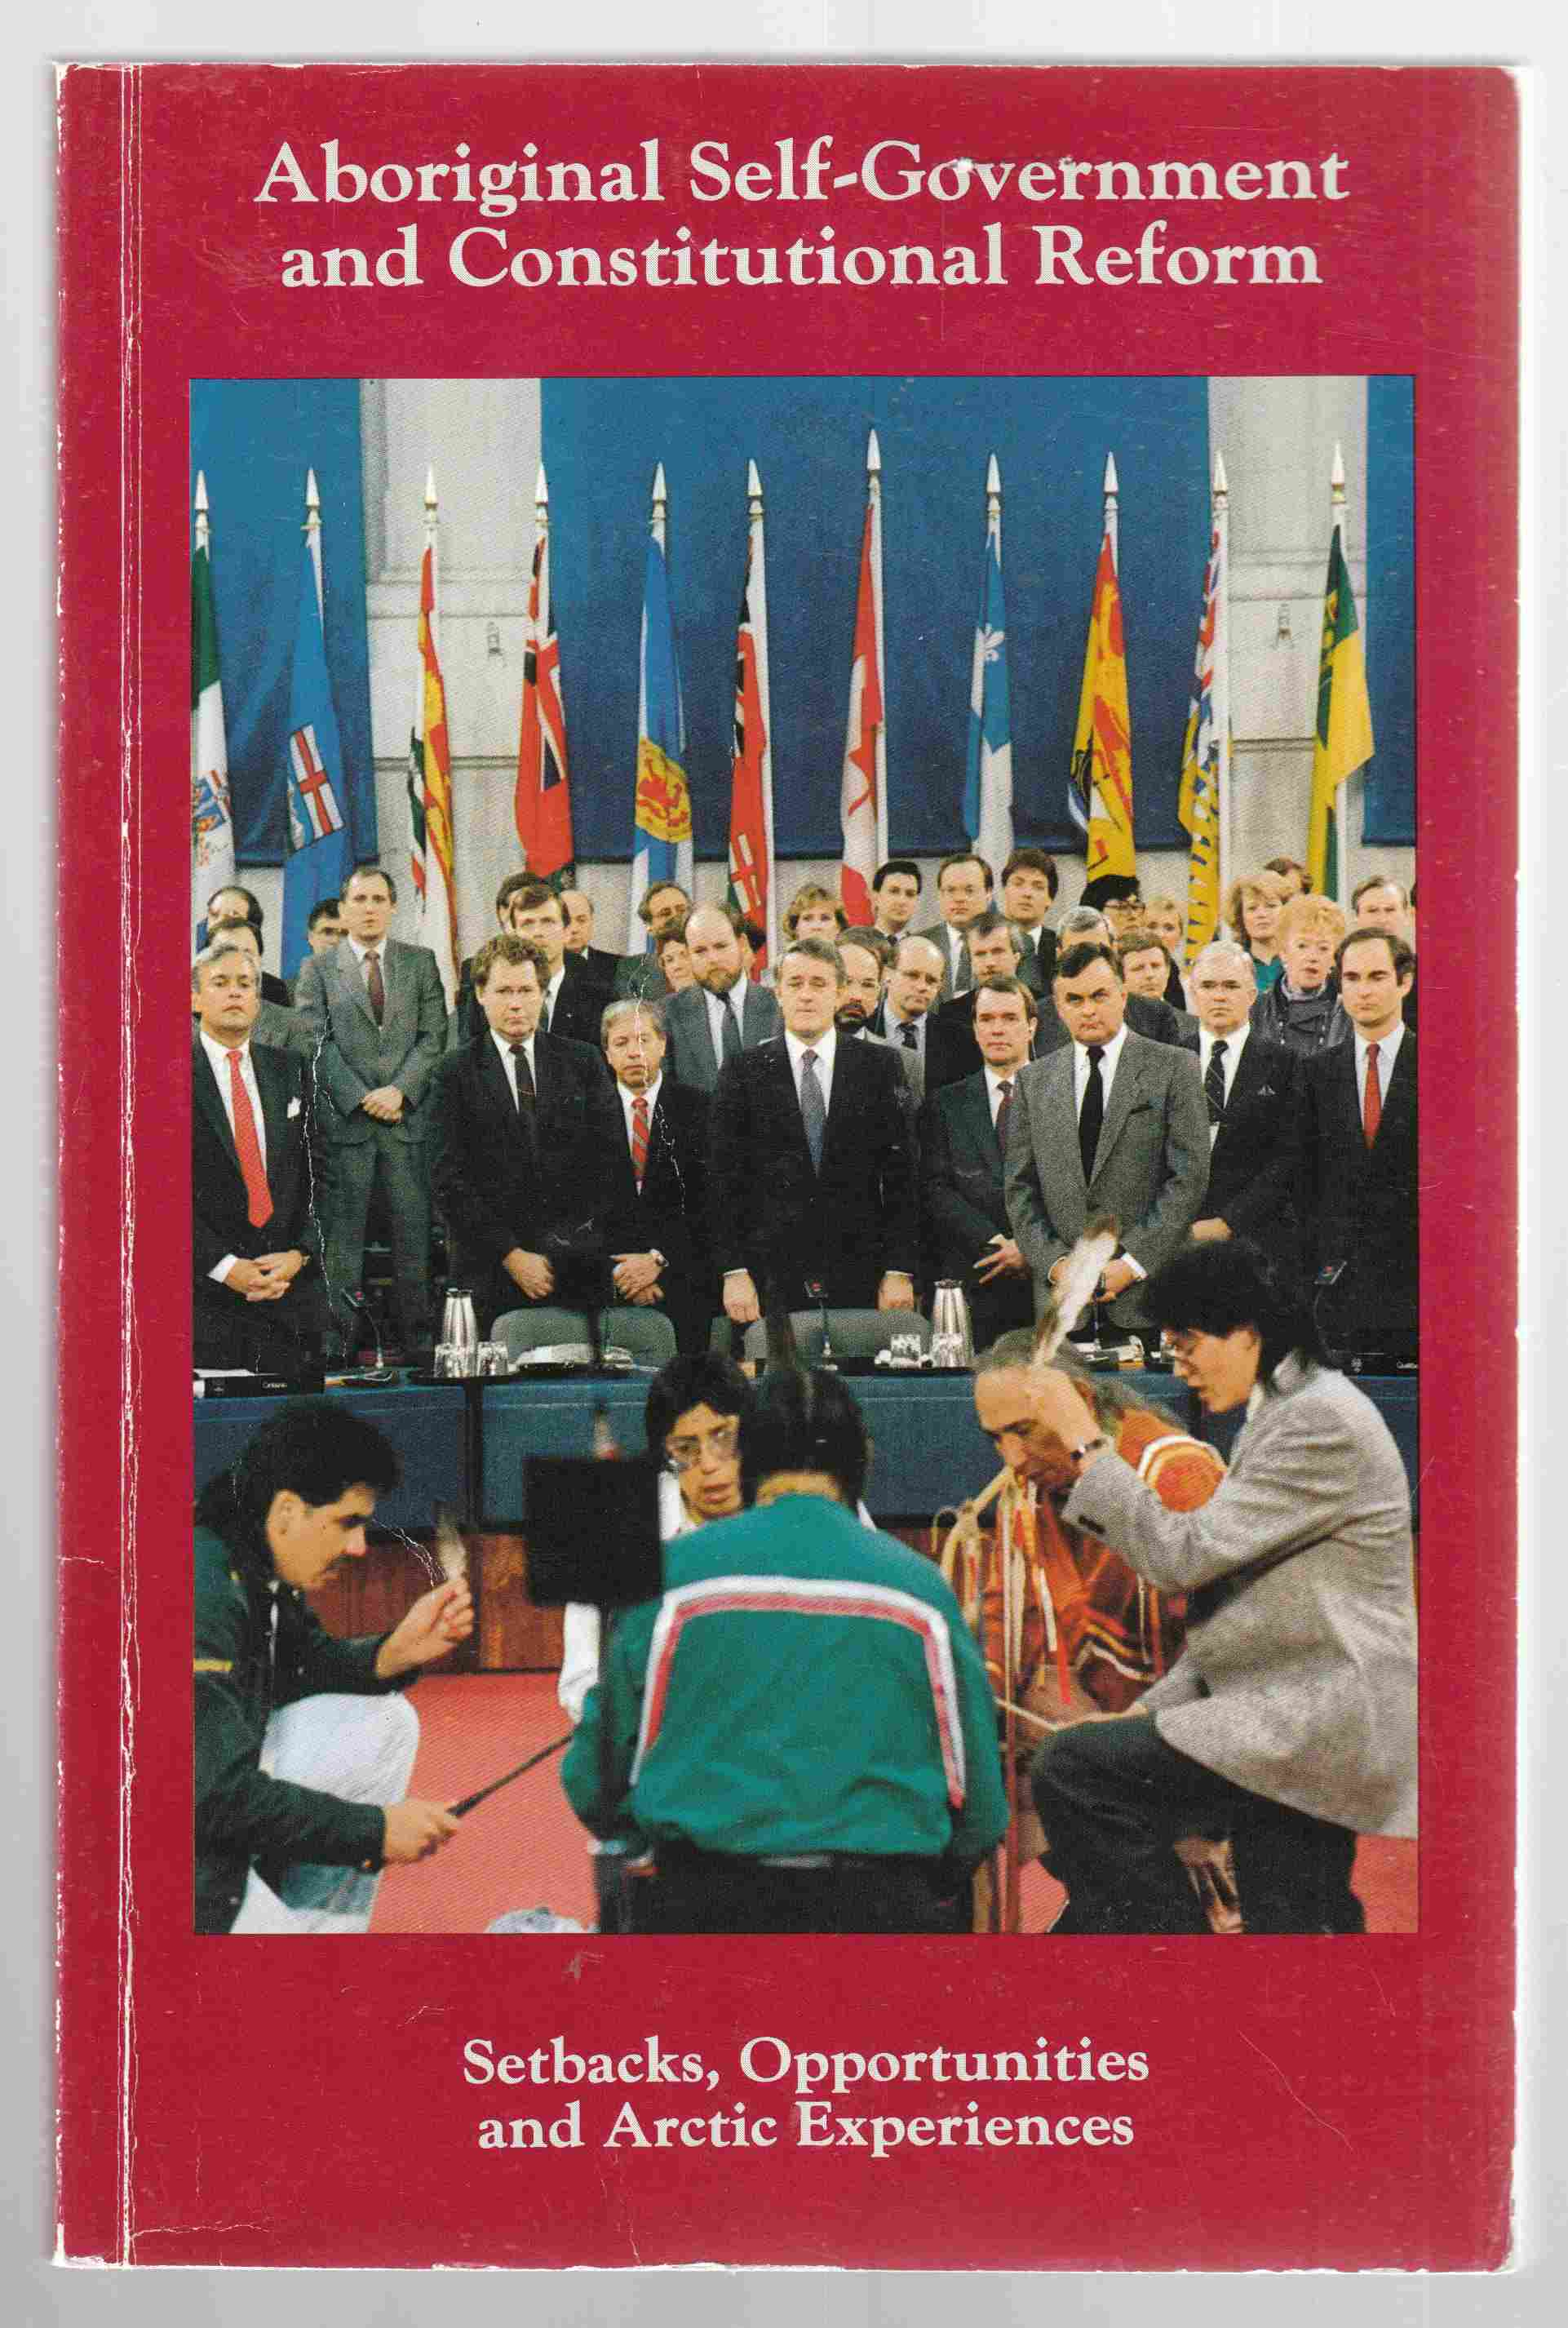 Image for Aboriginal Self-Government and Constitutional Reform  Setbacks, opportunities and Arctic experiences : a national conference held in Ottawa, 9-10 June 1987